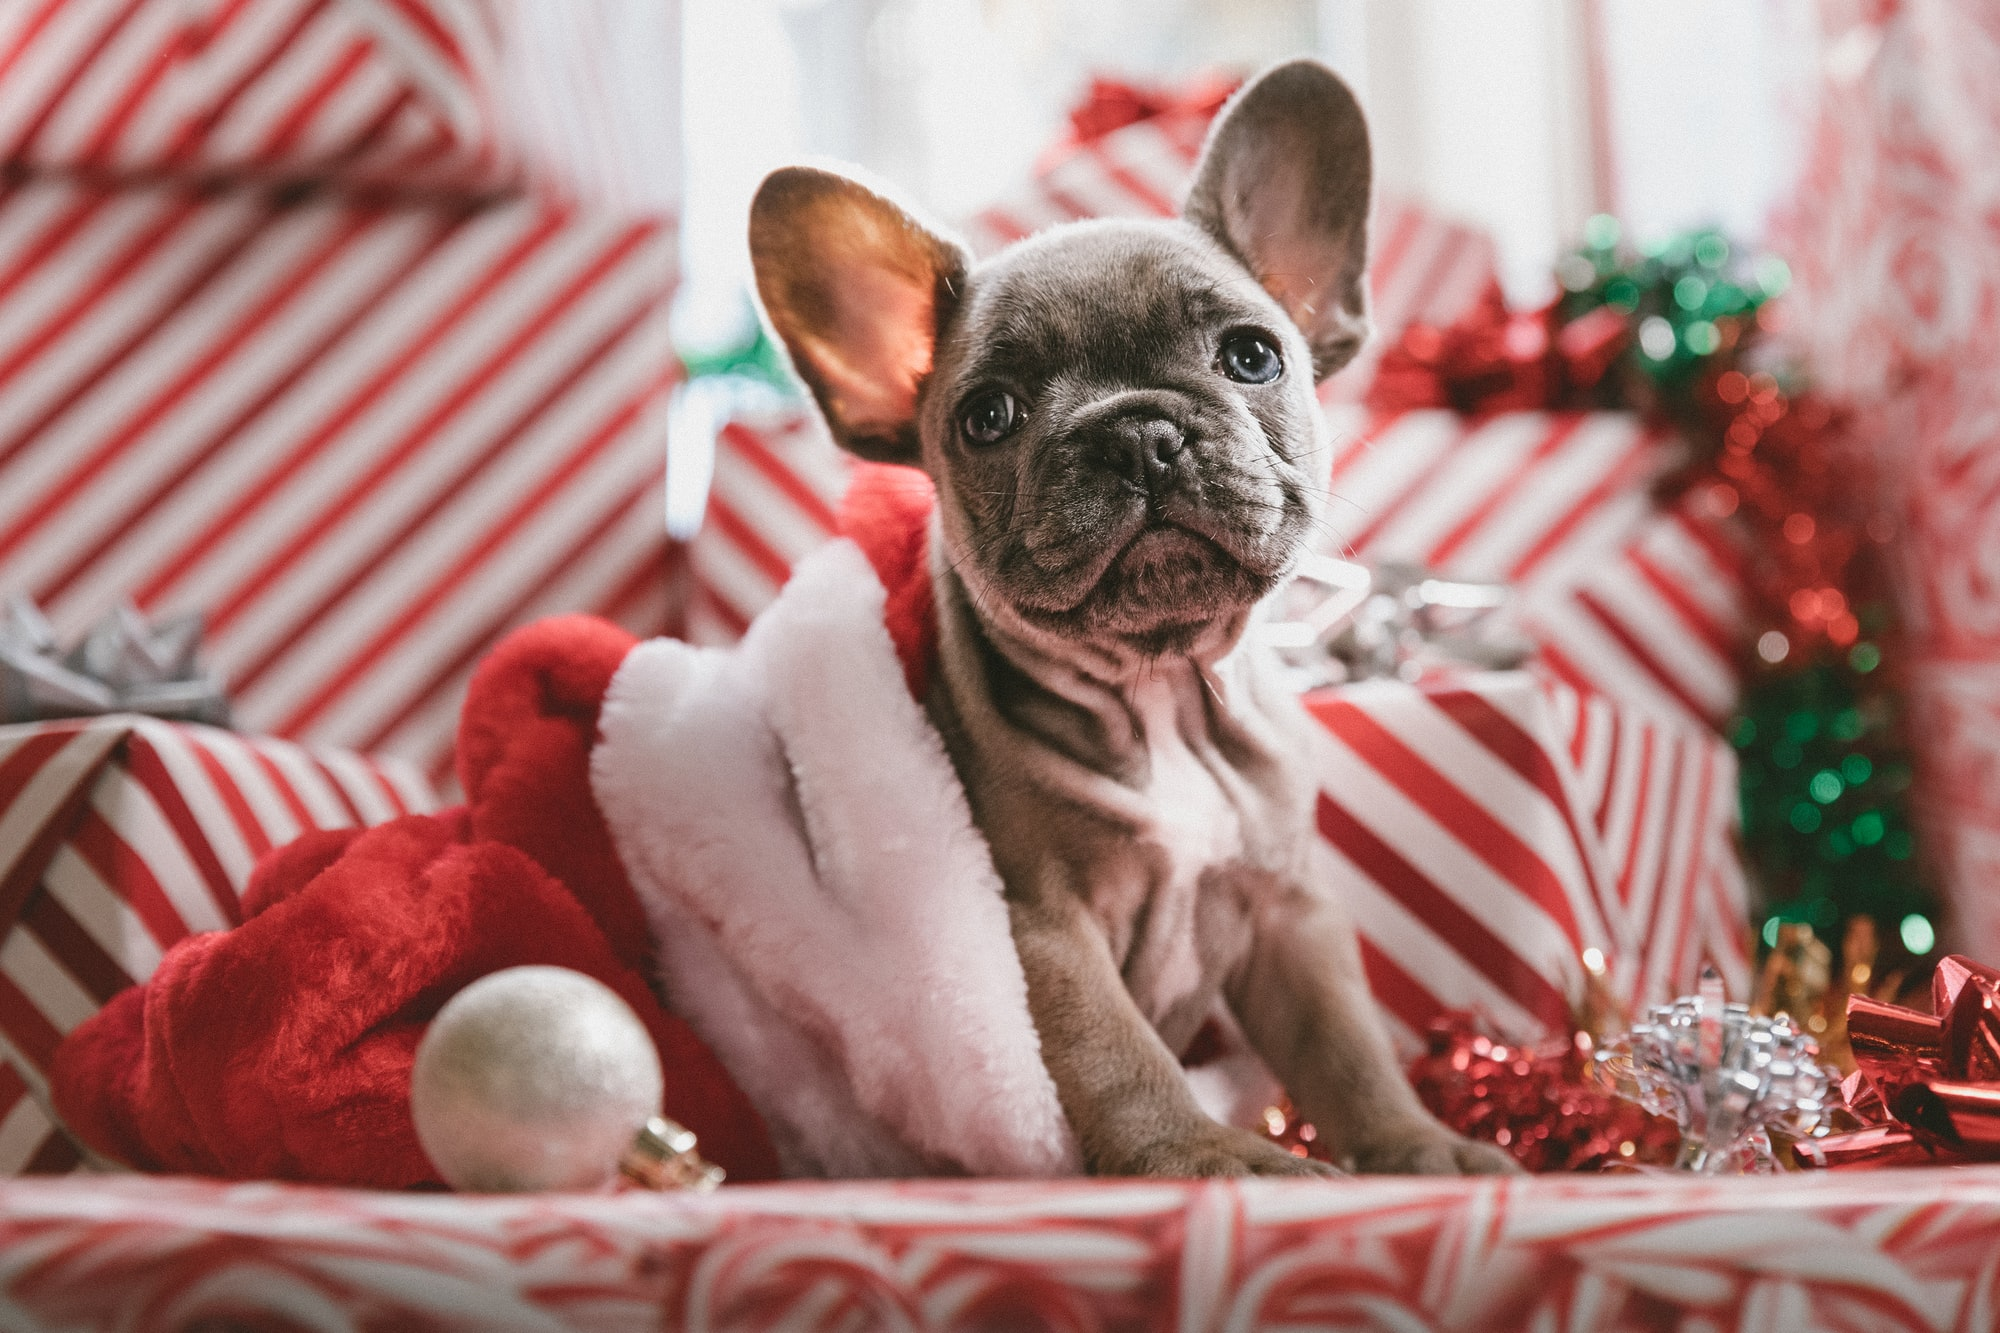 Why You Should Plan 2020 Christmas Gifts During the Global Pandemic